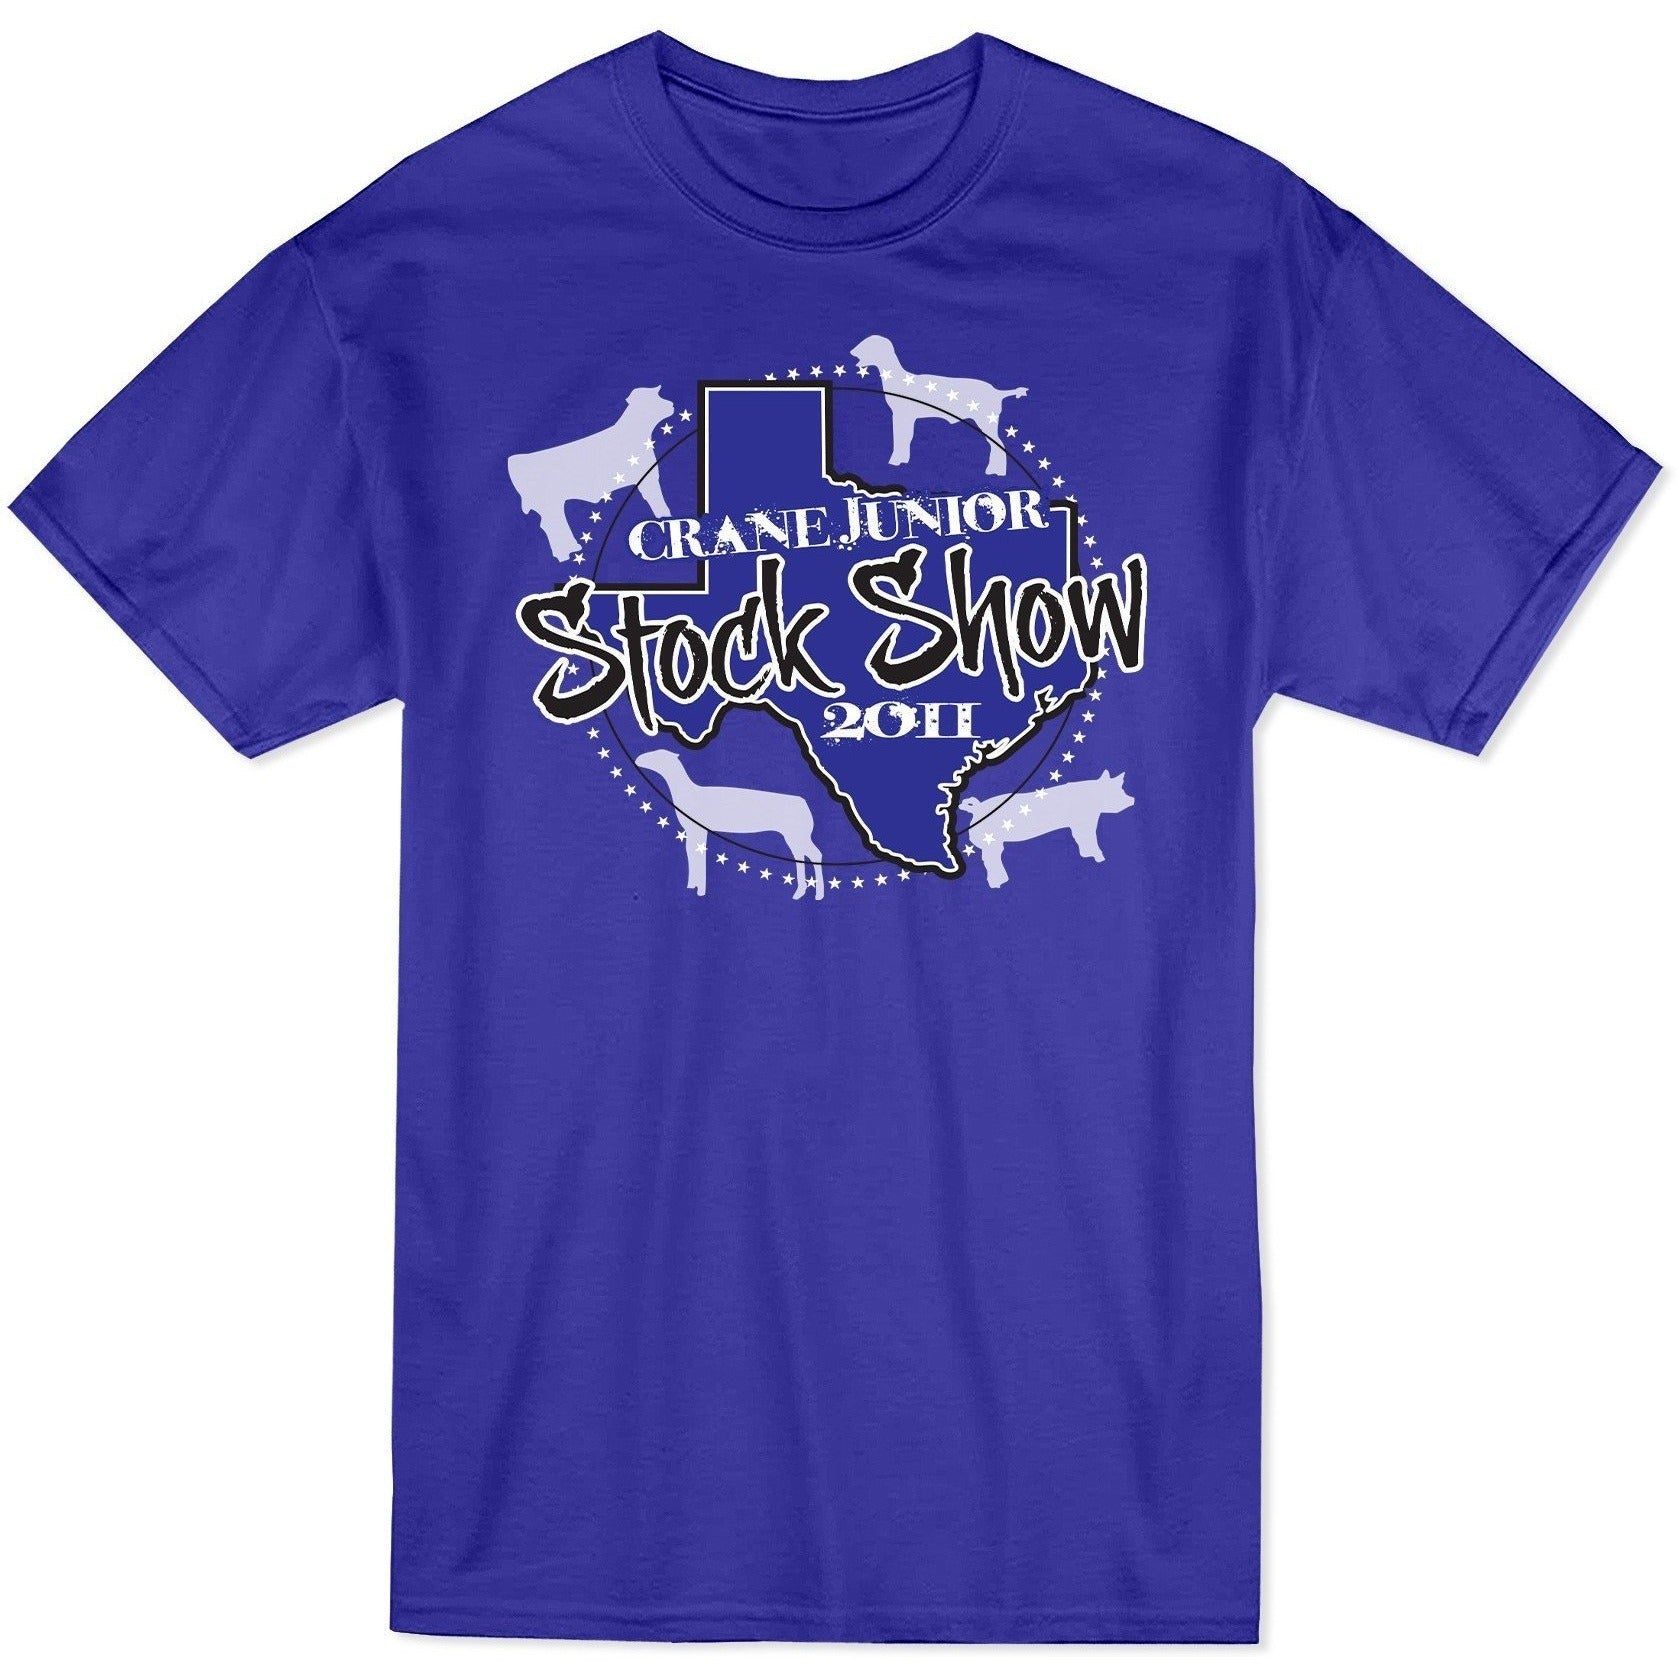 Stock Show - Crane Junior